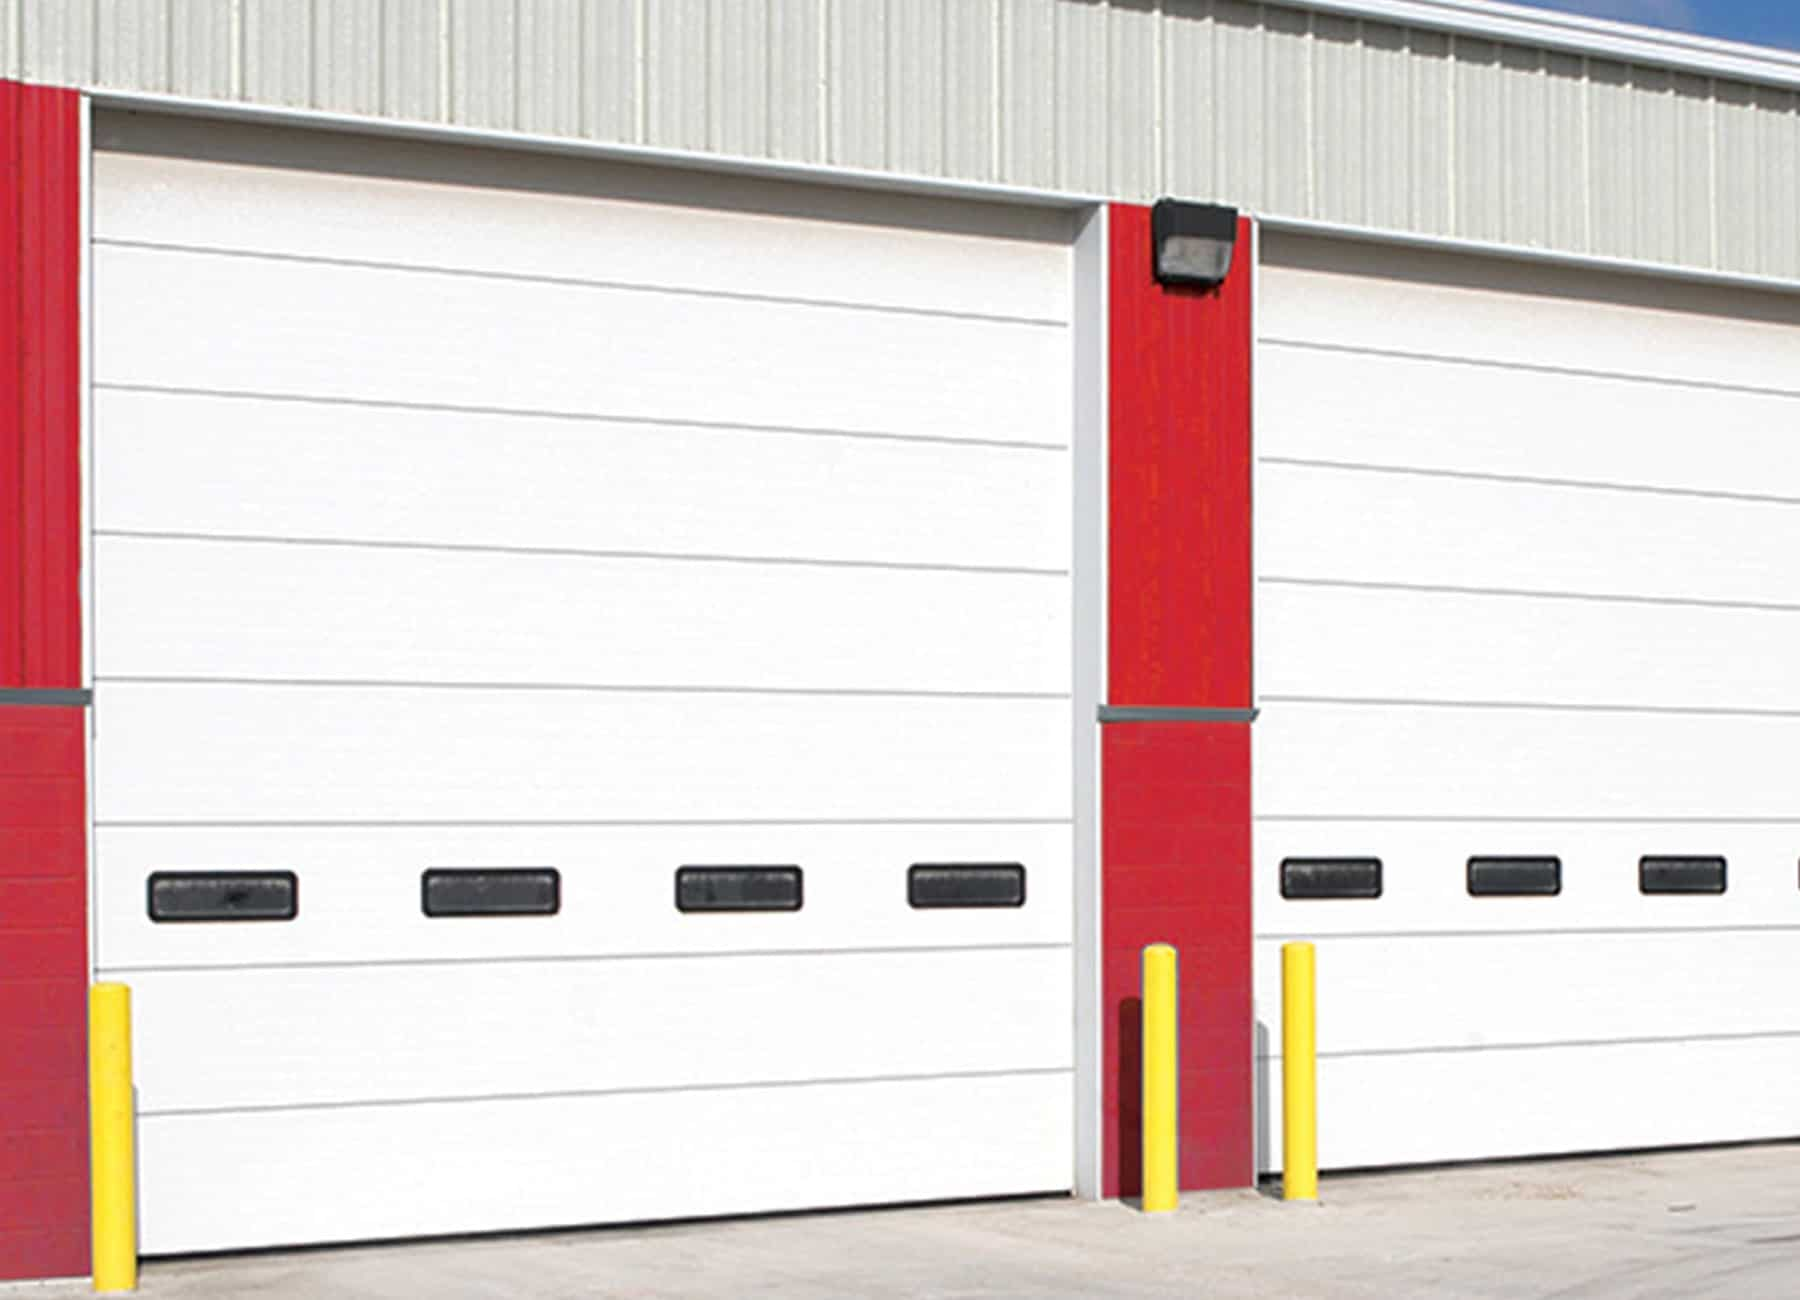 Rolling Doors, Rolling Doors, Overhead Door Company of Battle Creek & Jackson, Overhead Door Company of Battle Creek & Jackson